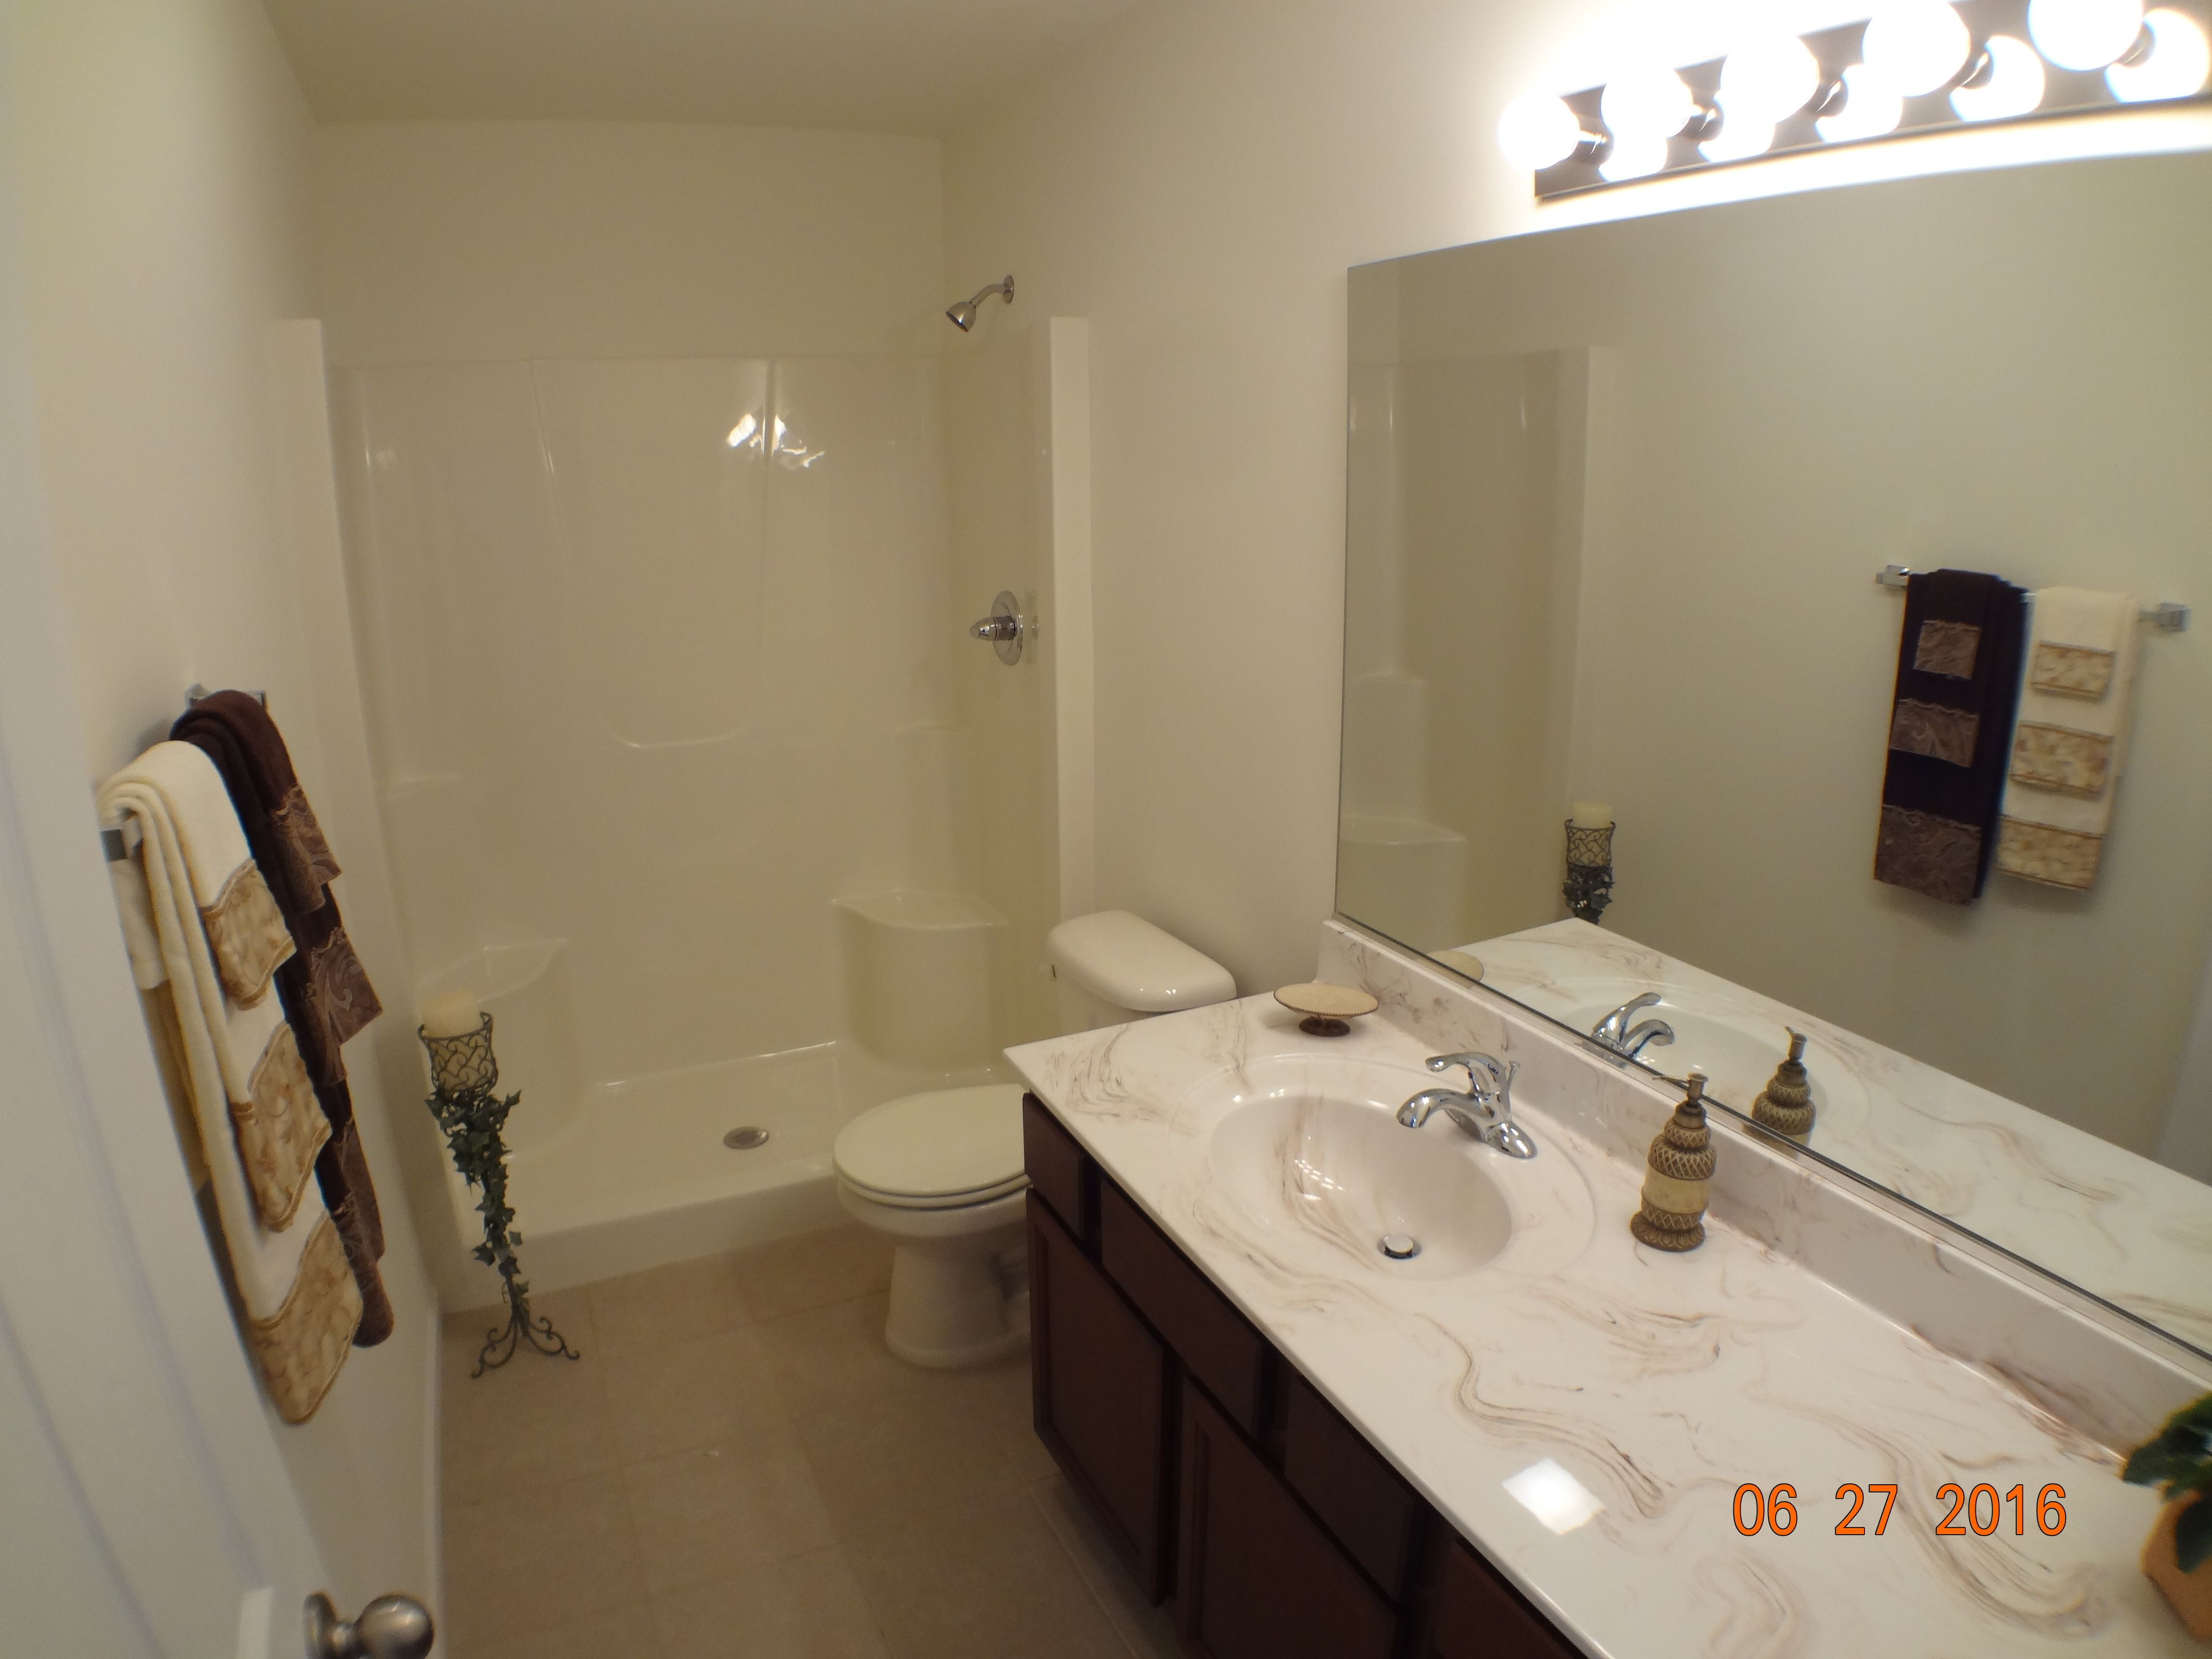 Bathroom featured in the Cheyenne II By Accent Homes Inc. in Gary, IN